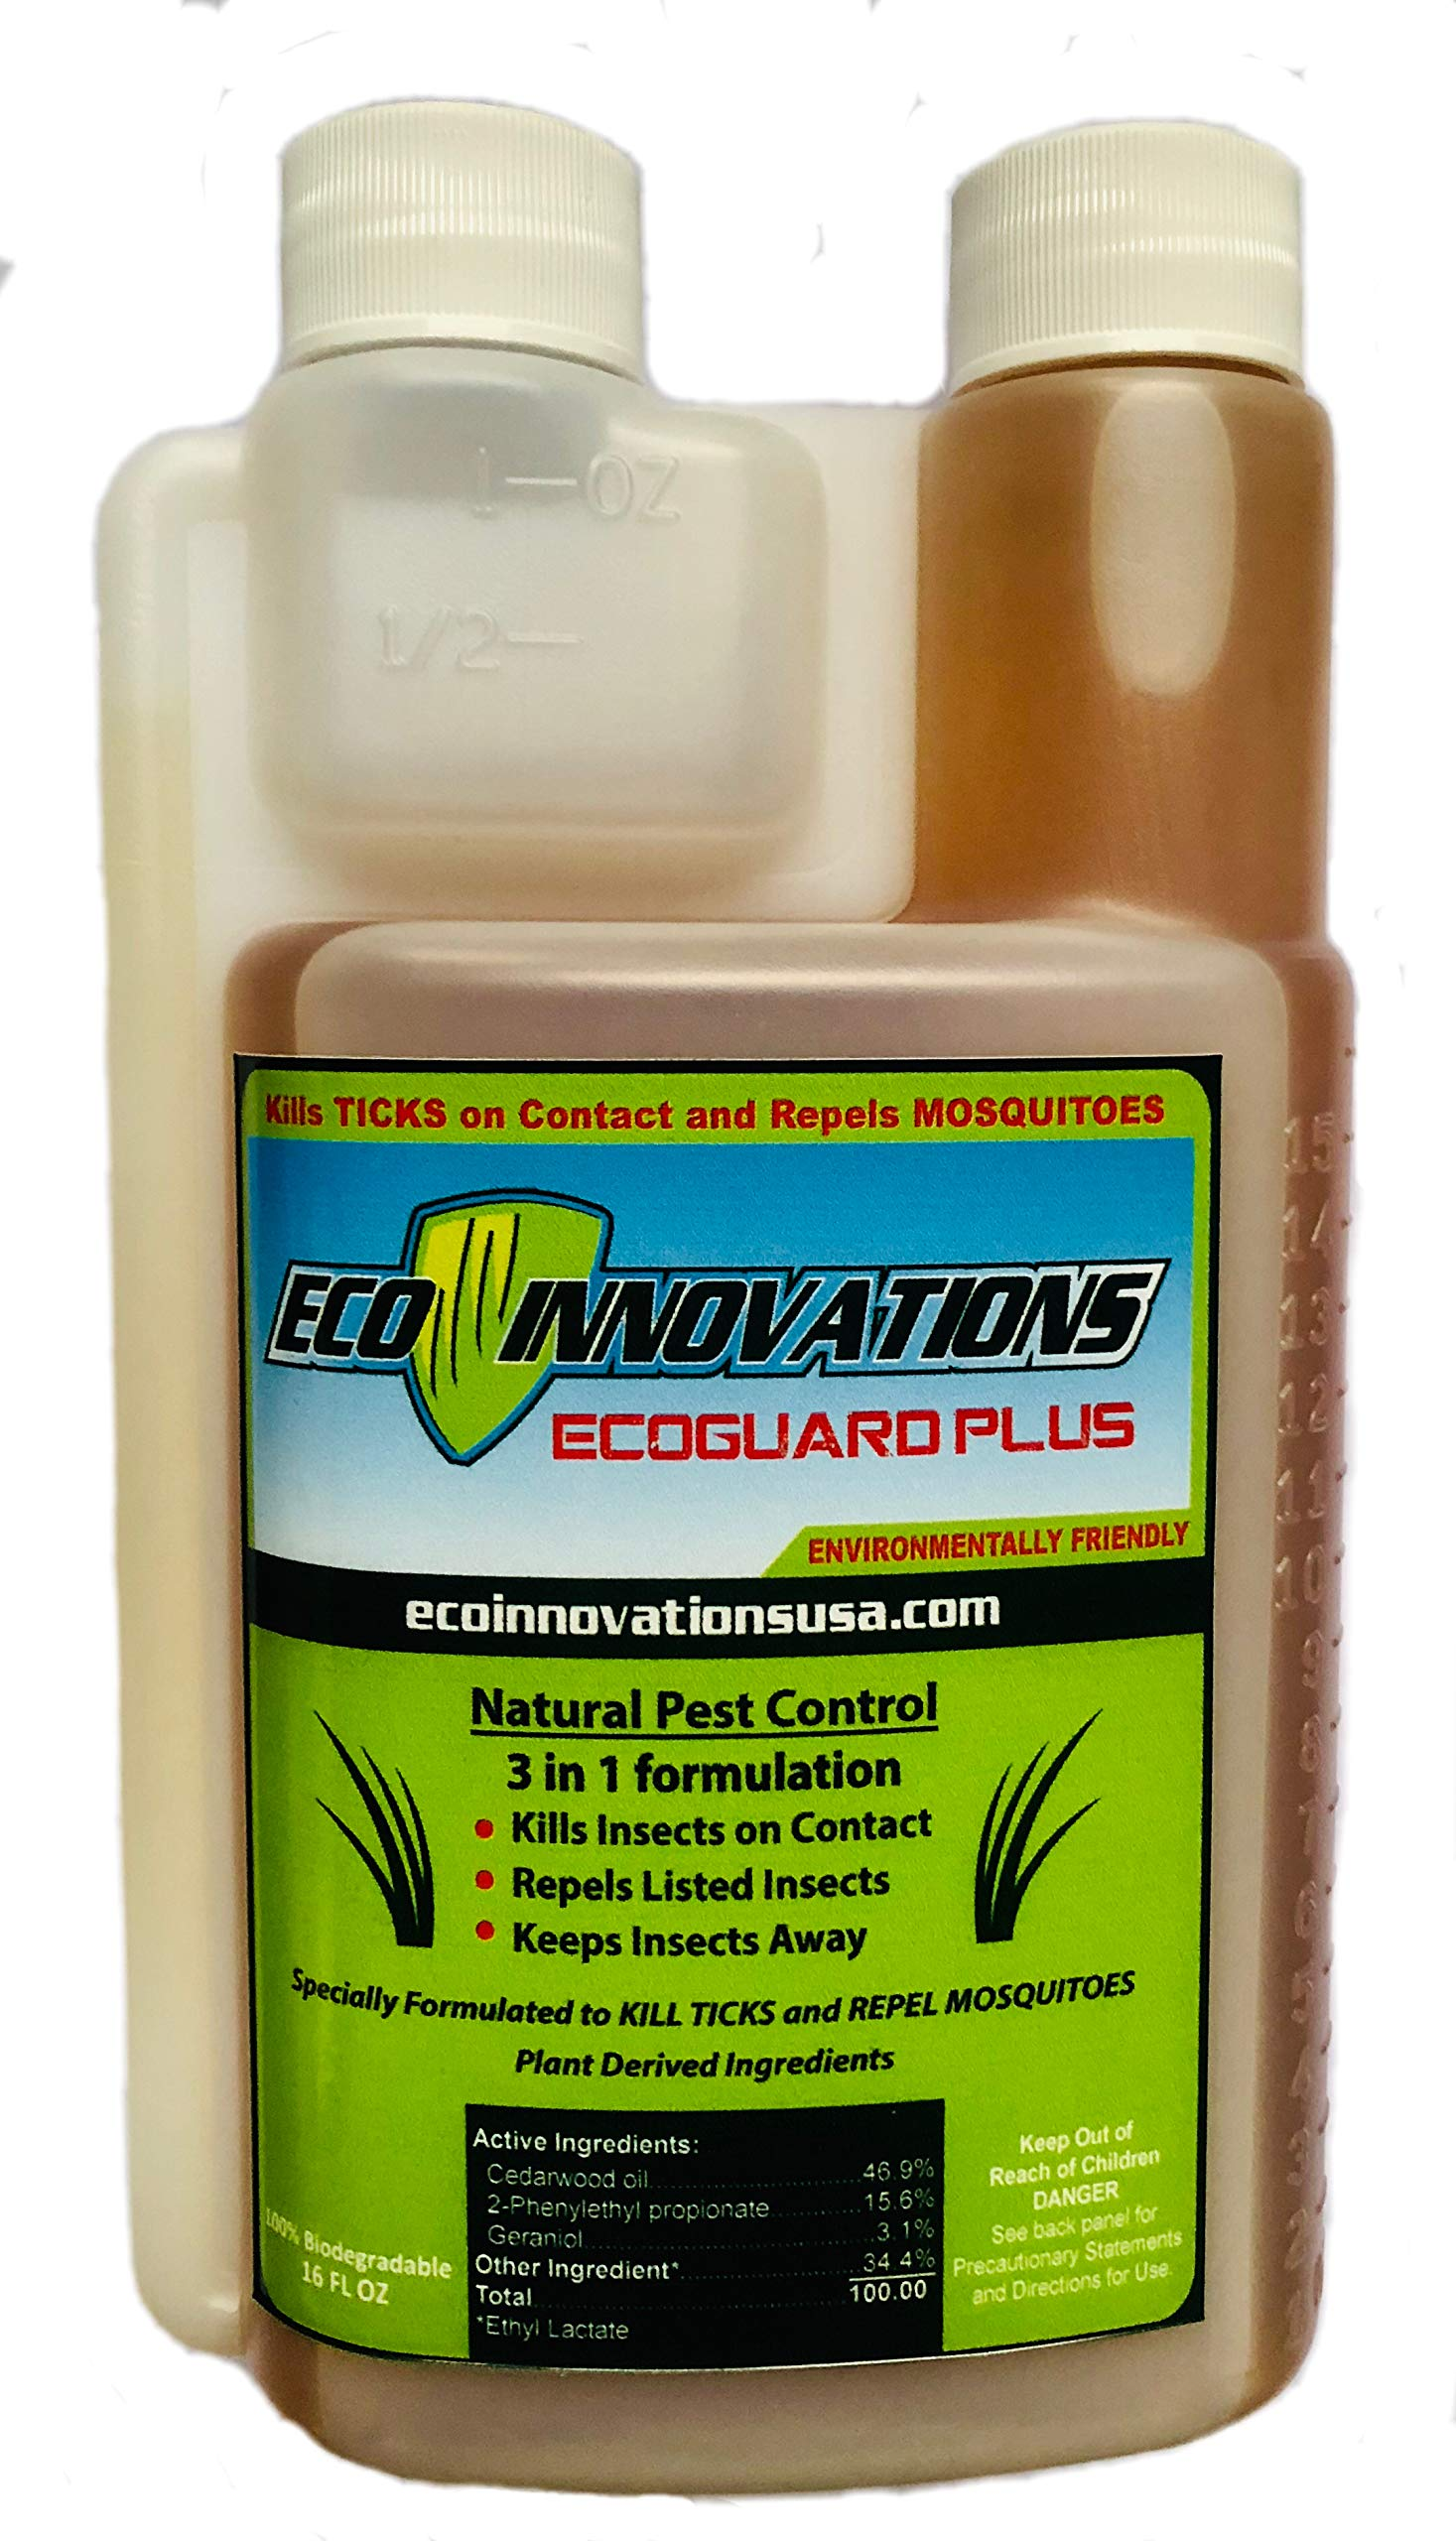 Eco Innovations, Ltd; EcoGuard Plus, 16 ounce, All Natural Tick and Mosquito Control Concentrate for Spray Applications in Lawn and Landscape by Eco Innovations, Ltd; EcoGuard Plus, 16 ounce, All Natural Tick and Mosquito Control Concentrate for